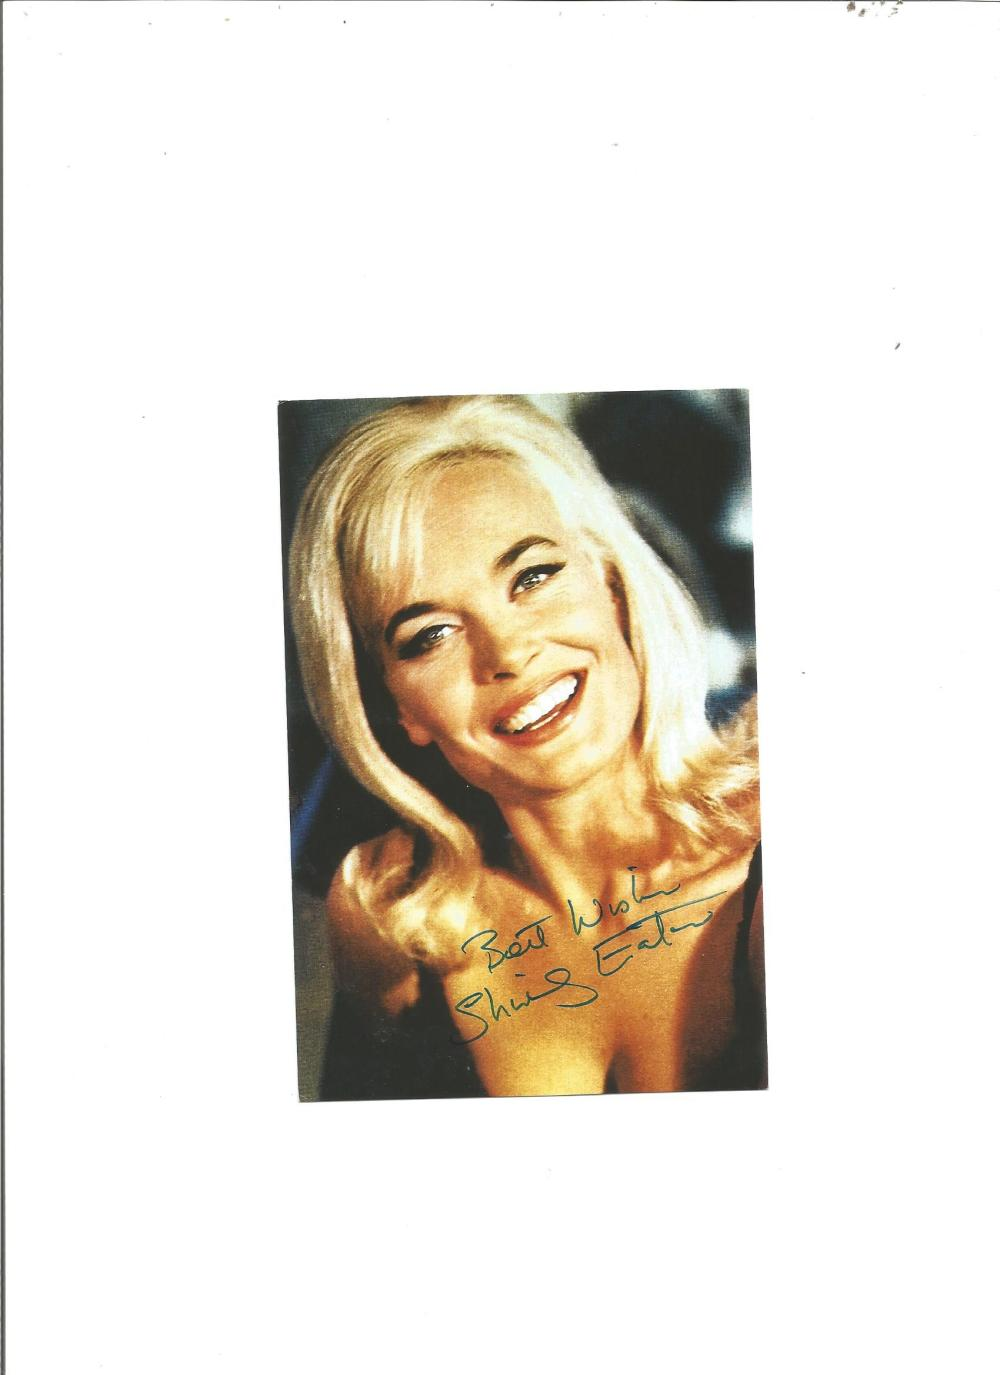 Shirley Eaton signed 6x4 colour photo from Goldfinger. Good Condition. All signed pieces come with a